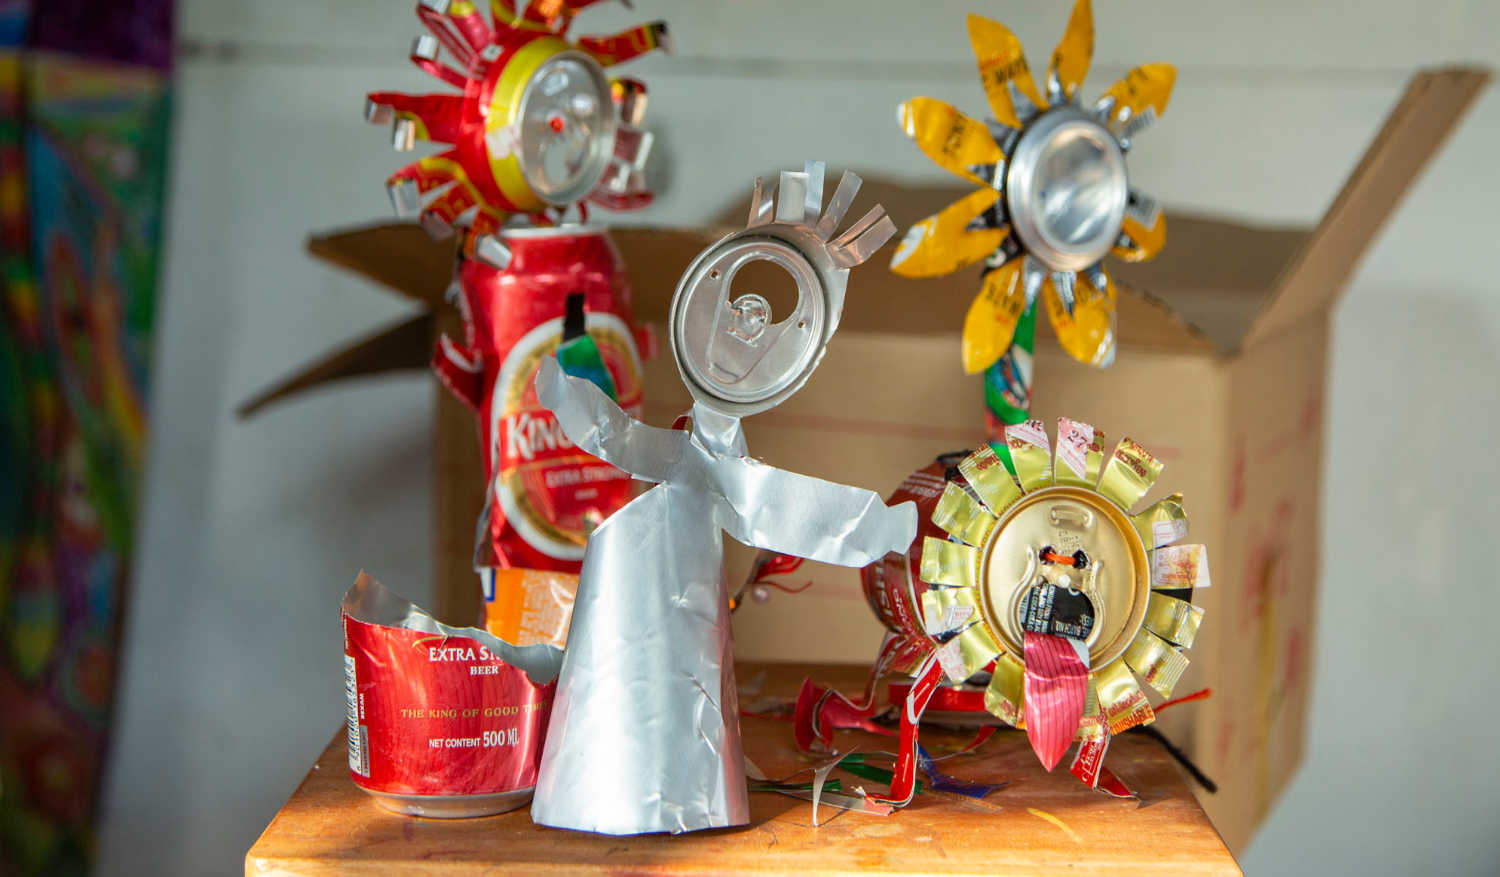 Attractive showpieces from discarded Cans made in the workshop organised by French artist Veronique Fillet, in the Art Room at Cabral Yard, Fort Kochi